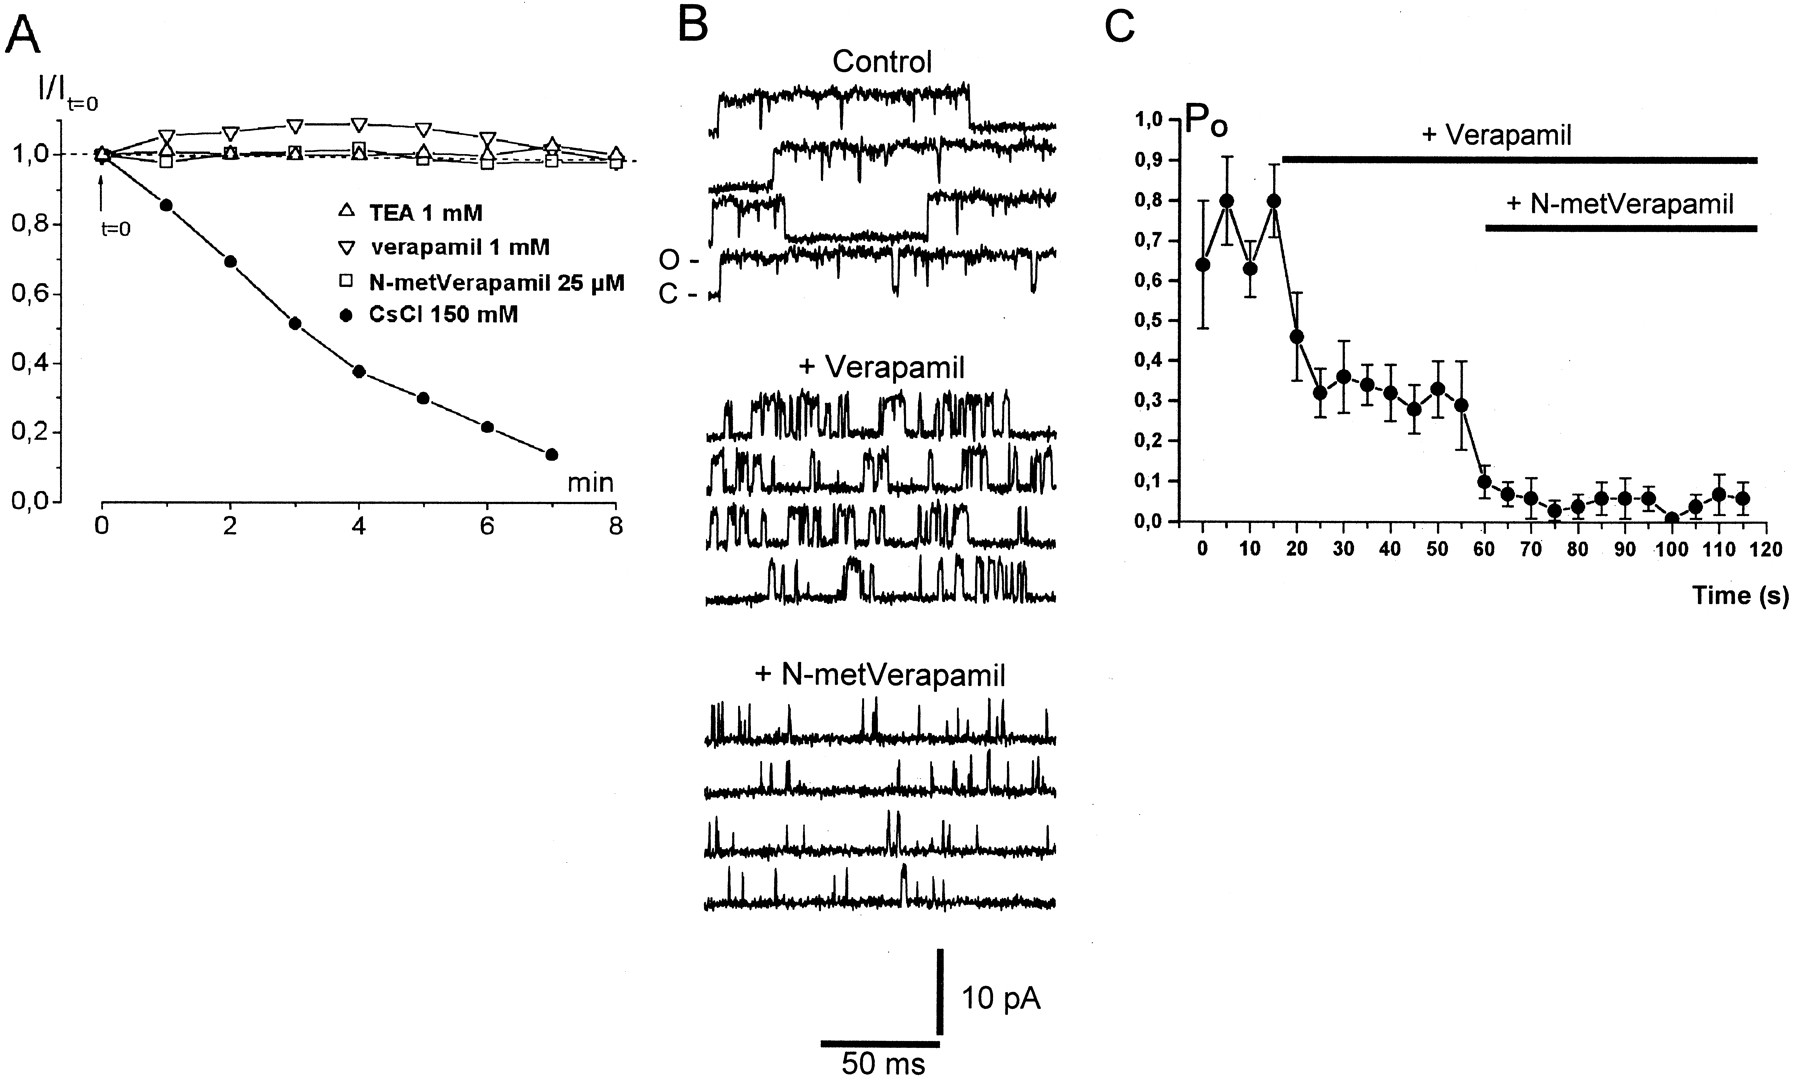 Verapamil Inhibits Proliferation Of Lncap Human Prostate Cancer Echo Effect With Ic Pt2399 Schematic Download Figure